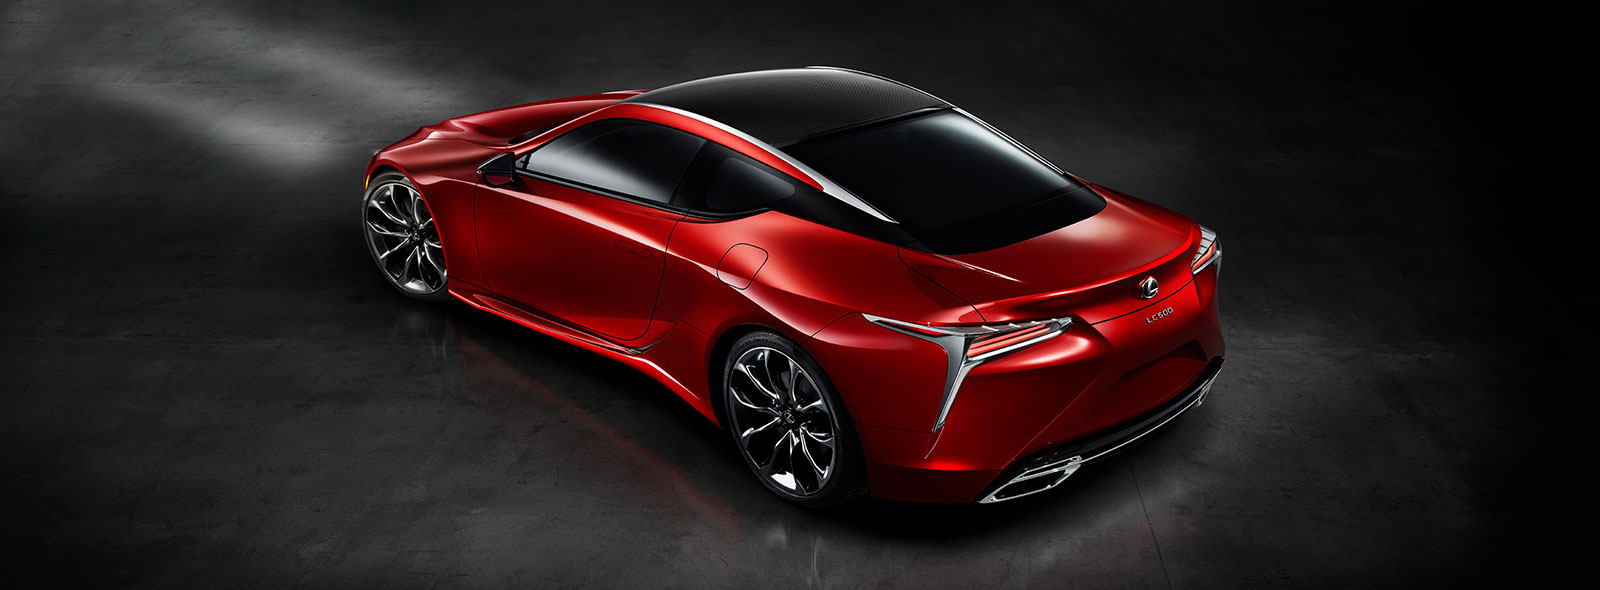 2017 Lexus LC Design Gallery 001